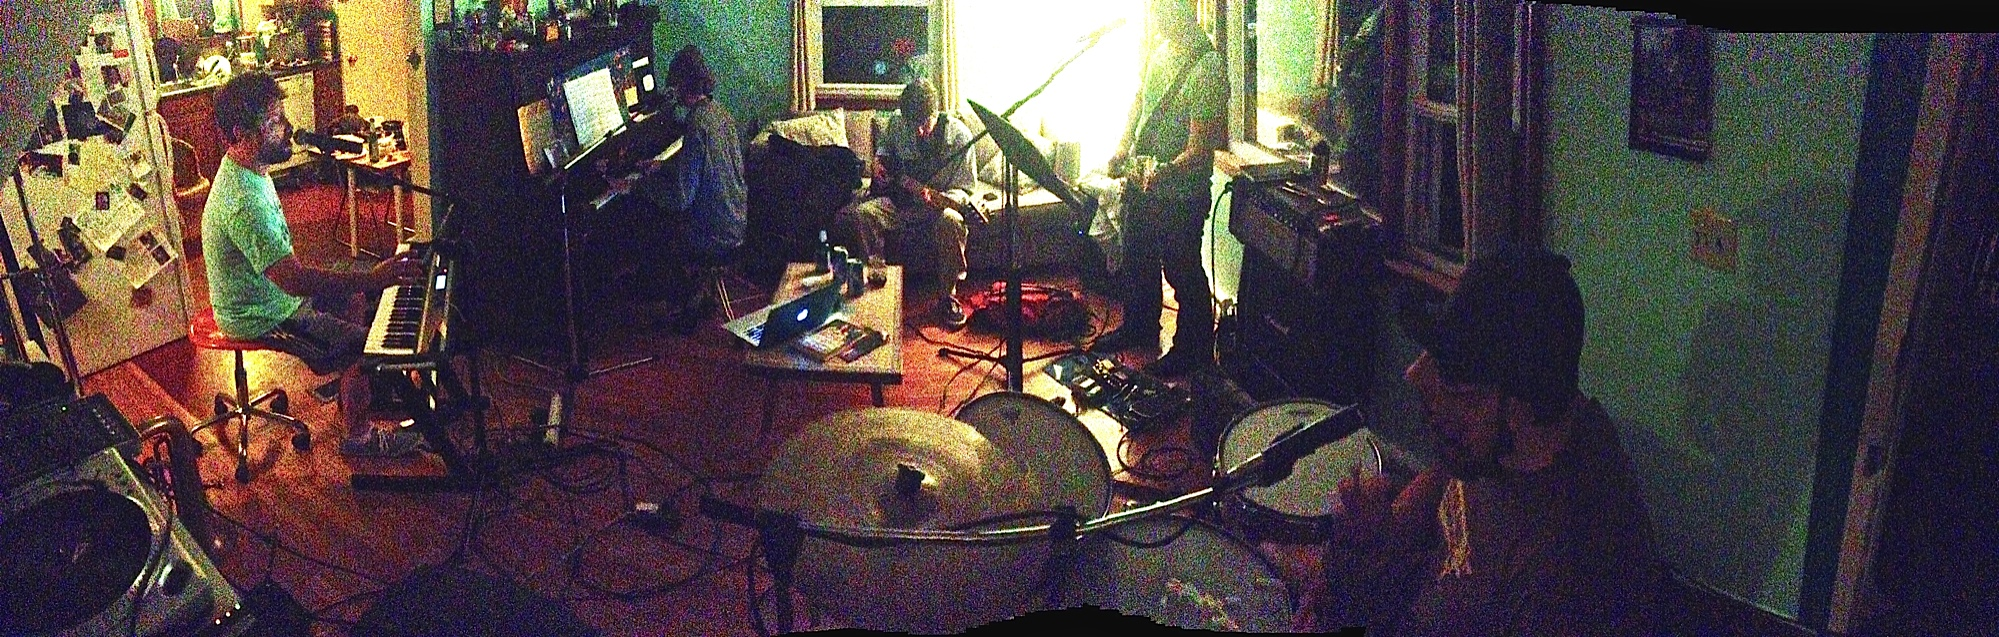 Pragnus Gray Collective prepares for the CD release performance at Adam's house.